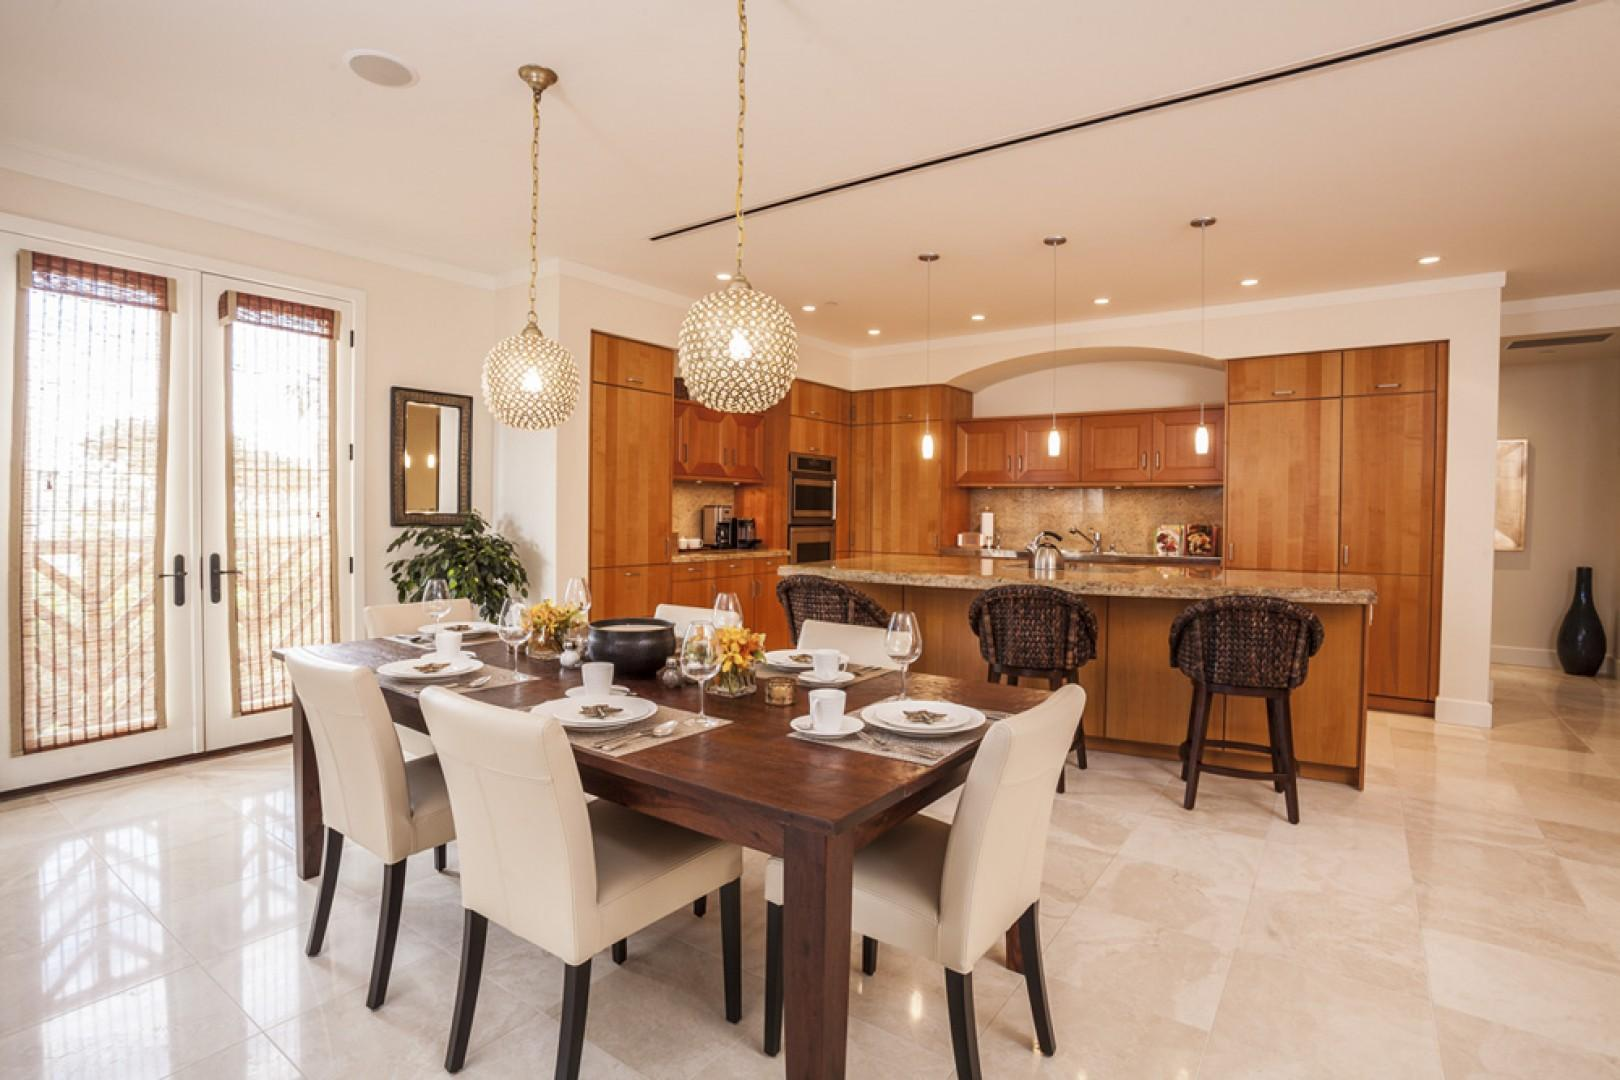 Indoor dining for up to six guests at a 90